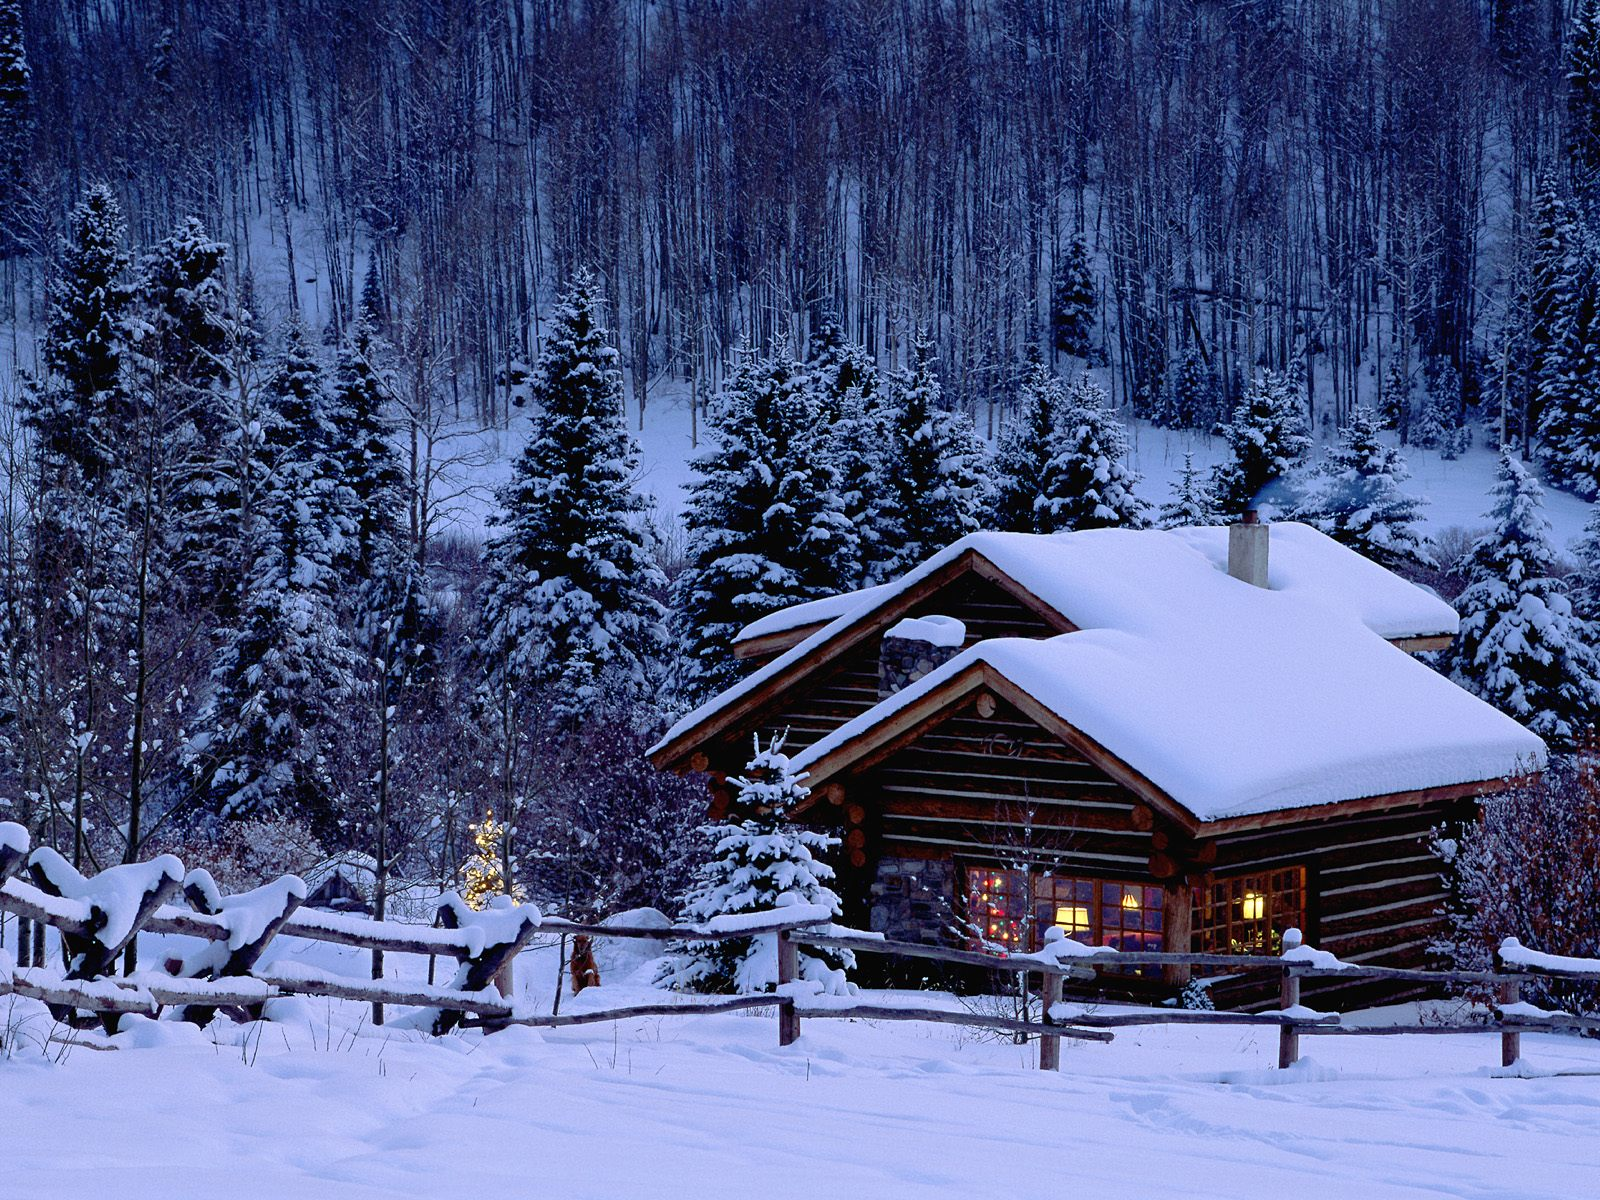 Winter Wallpaper Scenes With Cabins Winter Wallpaper HD For Desktop Computer Wallpaper Free Wallpaper